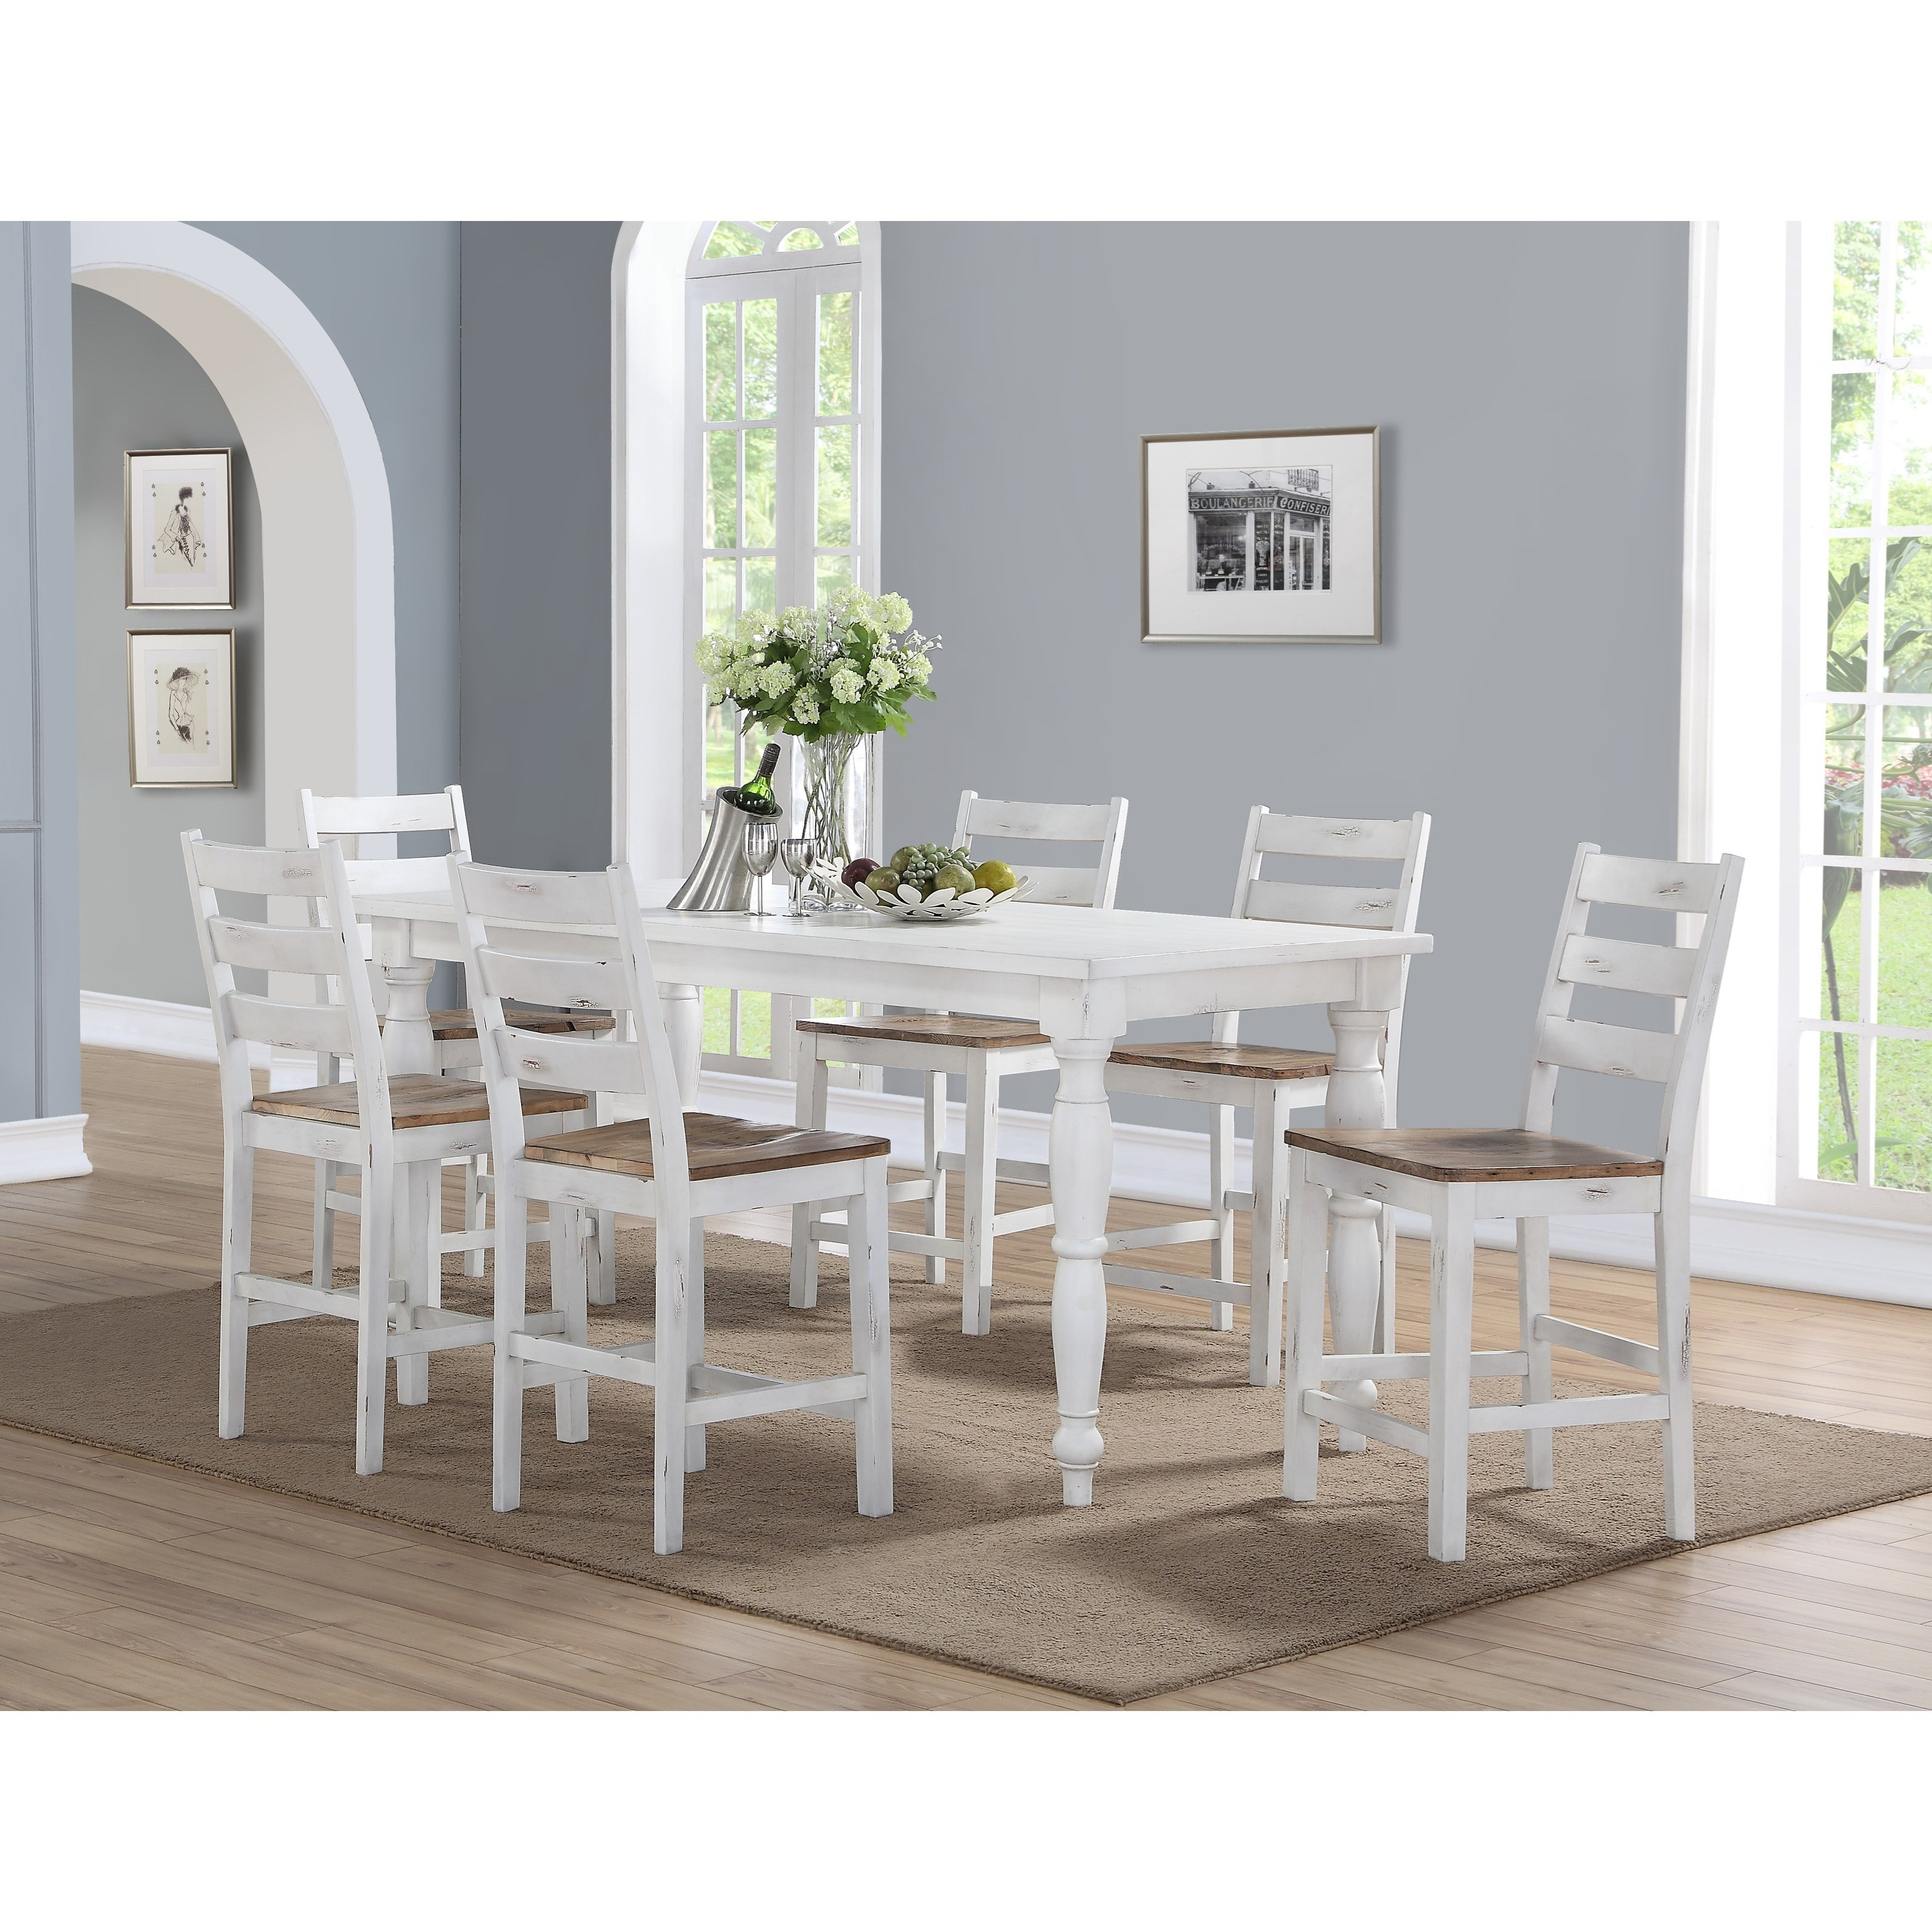 Abaco Gathering Table and Barstool Set by Emerald at Michael Alan Furniture & Design